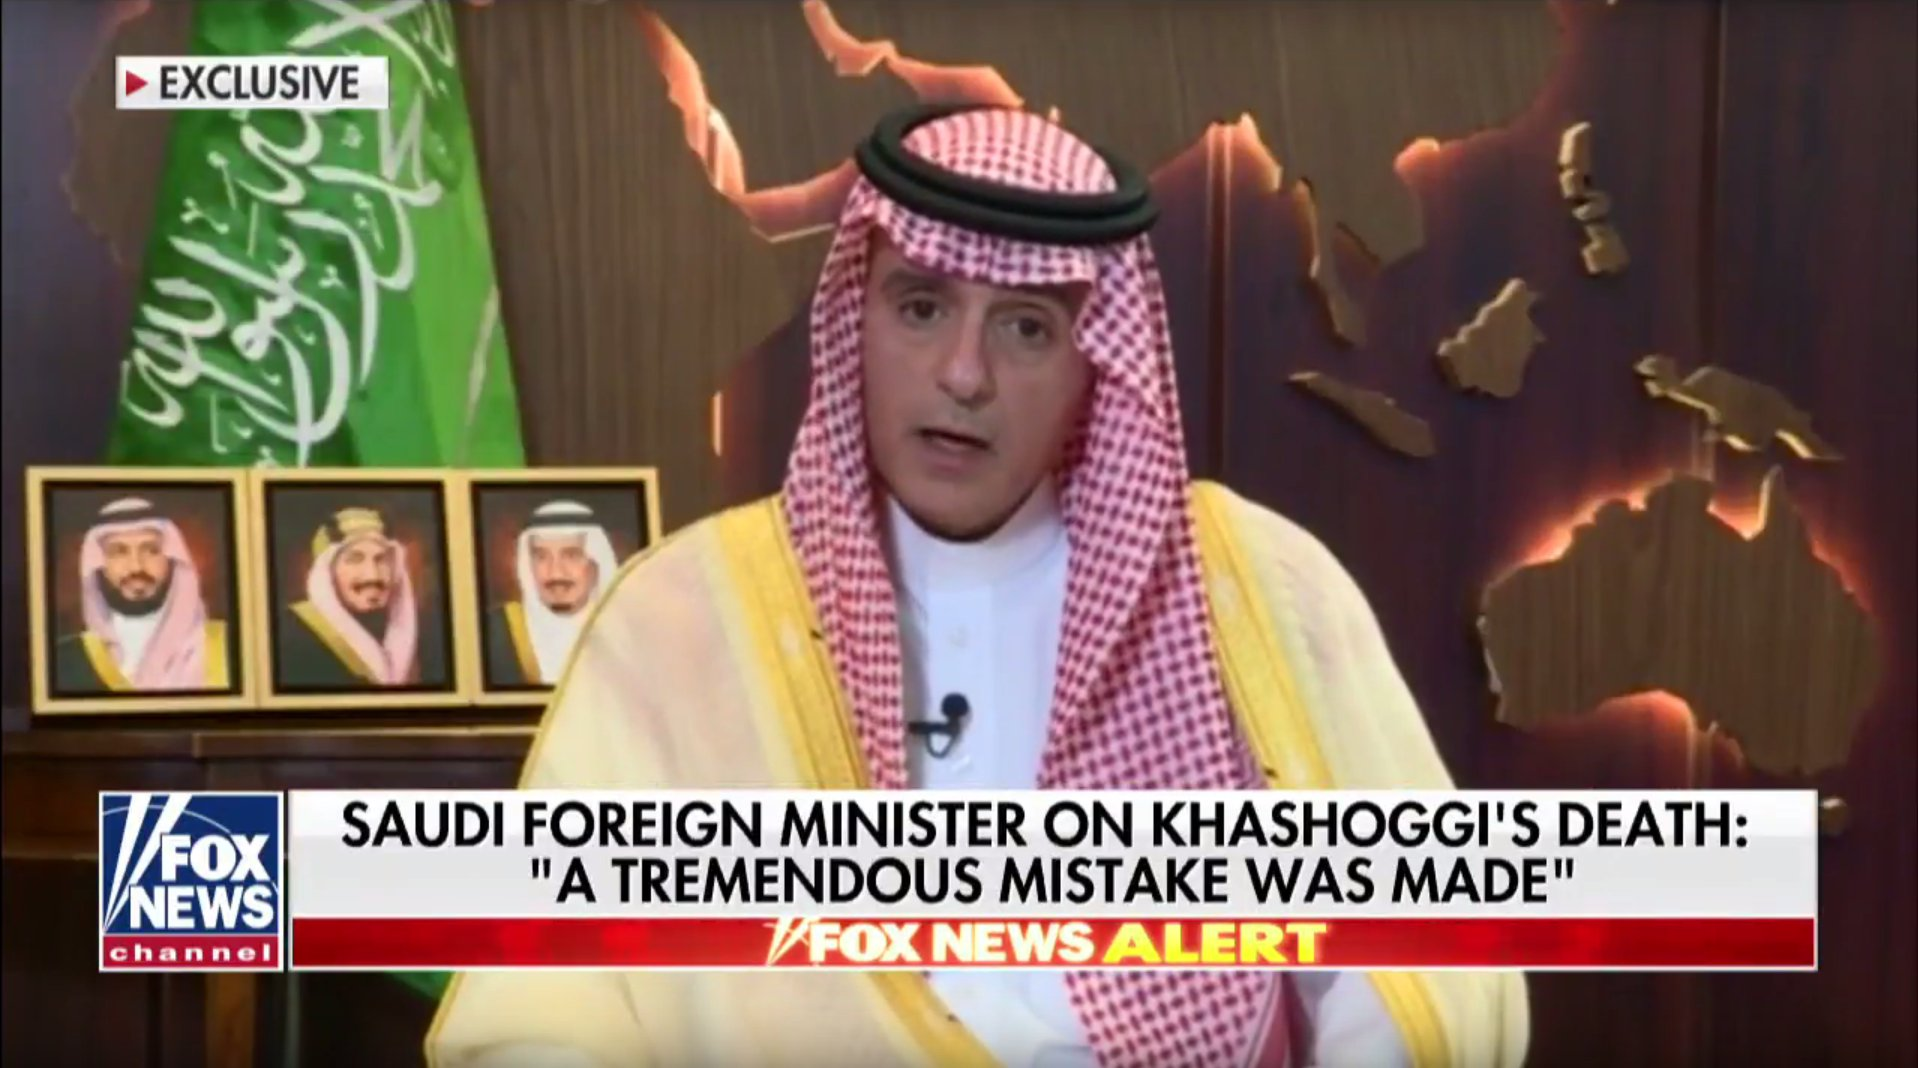 Saudi Arabia's Foreign Minister Adel al-Jubeir speaks exclusively to Fox News' Bret Baier on the 'terrible mistake' that happened at the Saudi consulate in Turkey and says those responsible will be held accountable.